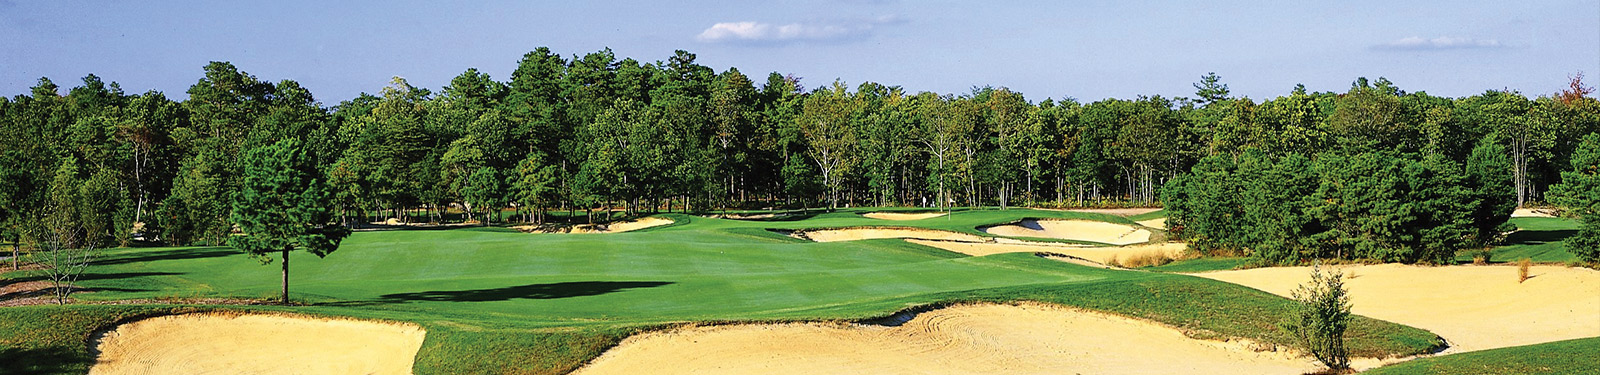 sand-barrens-nj-golf-course